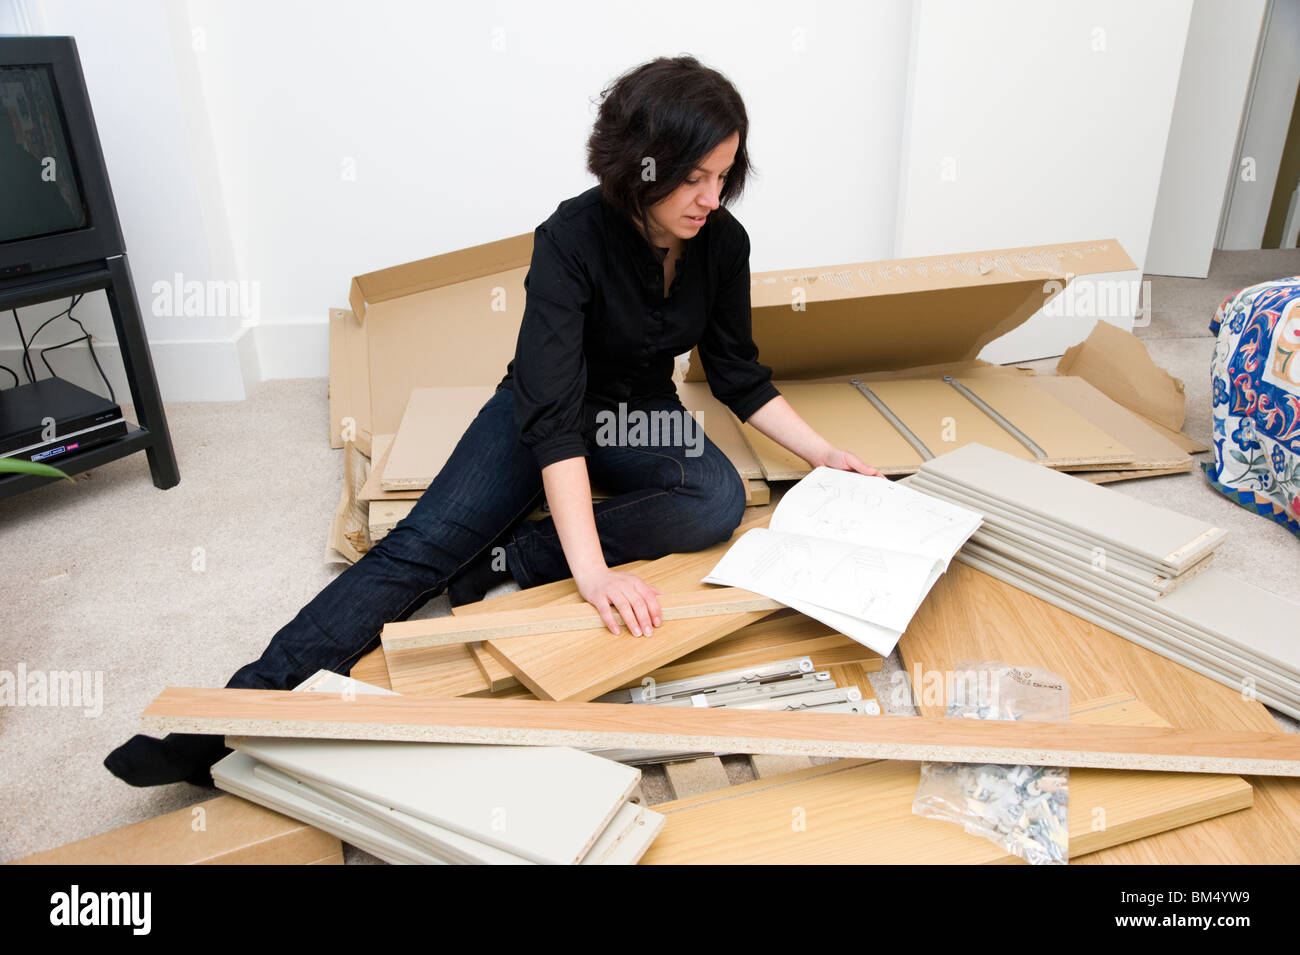 flat pack sofas uk wooden sofa legs online india woman assembling ikea furniture england stock photo